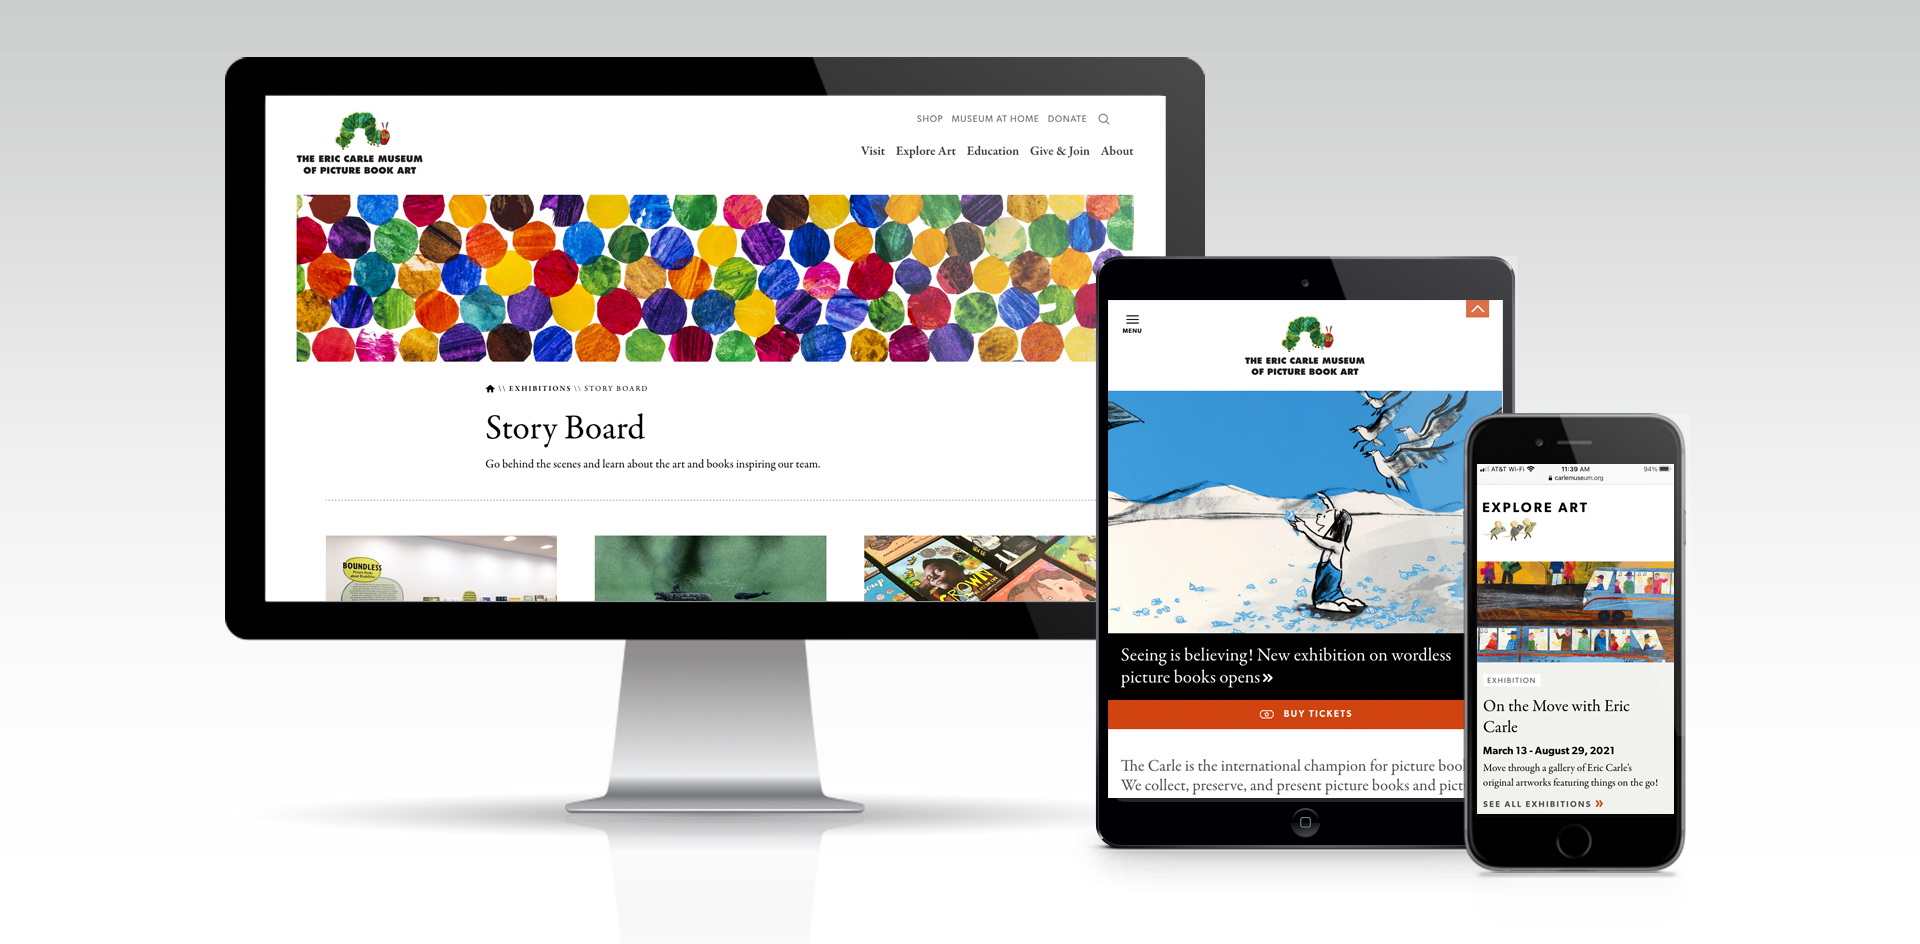 responsive website designs for the Eric Carle Museum of Picture Book Art